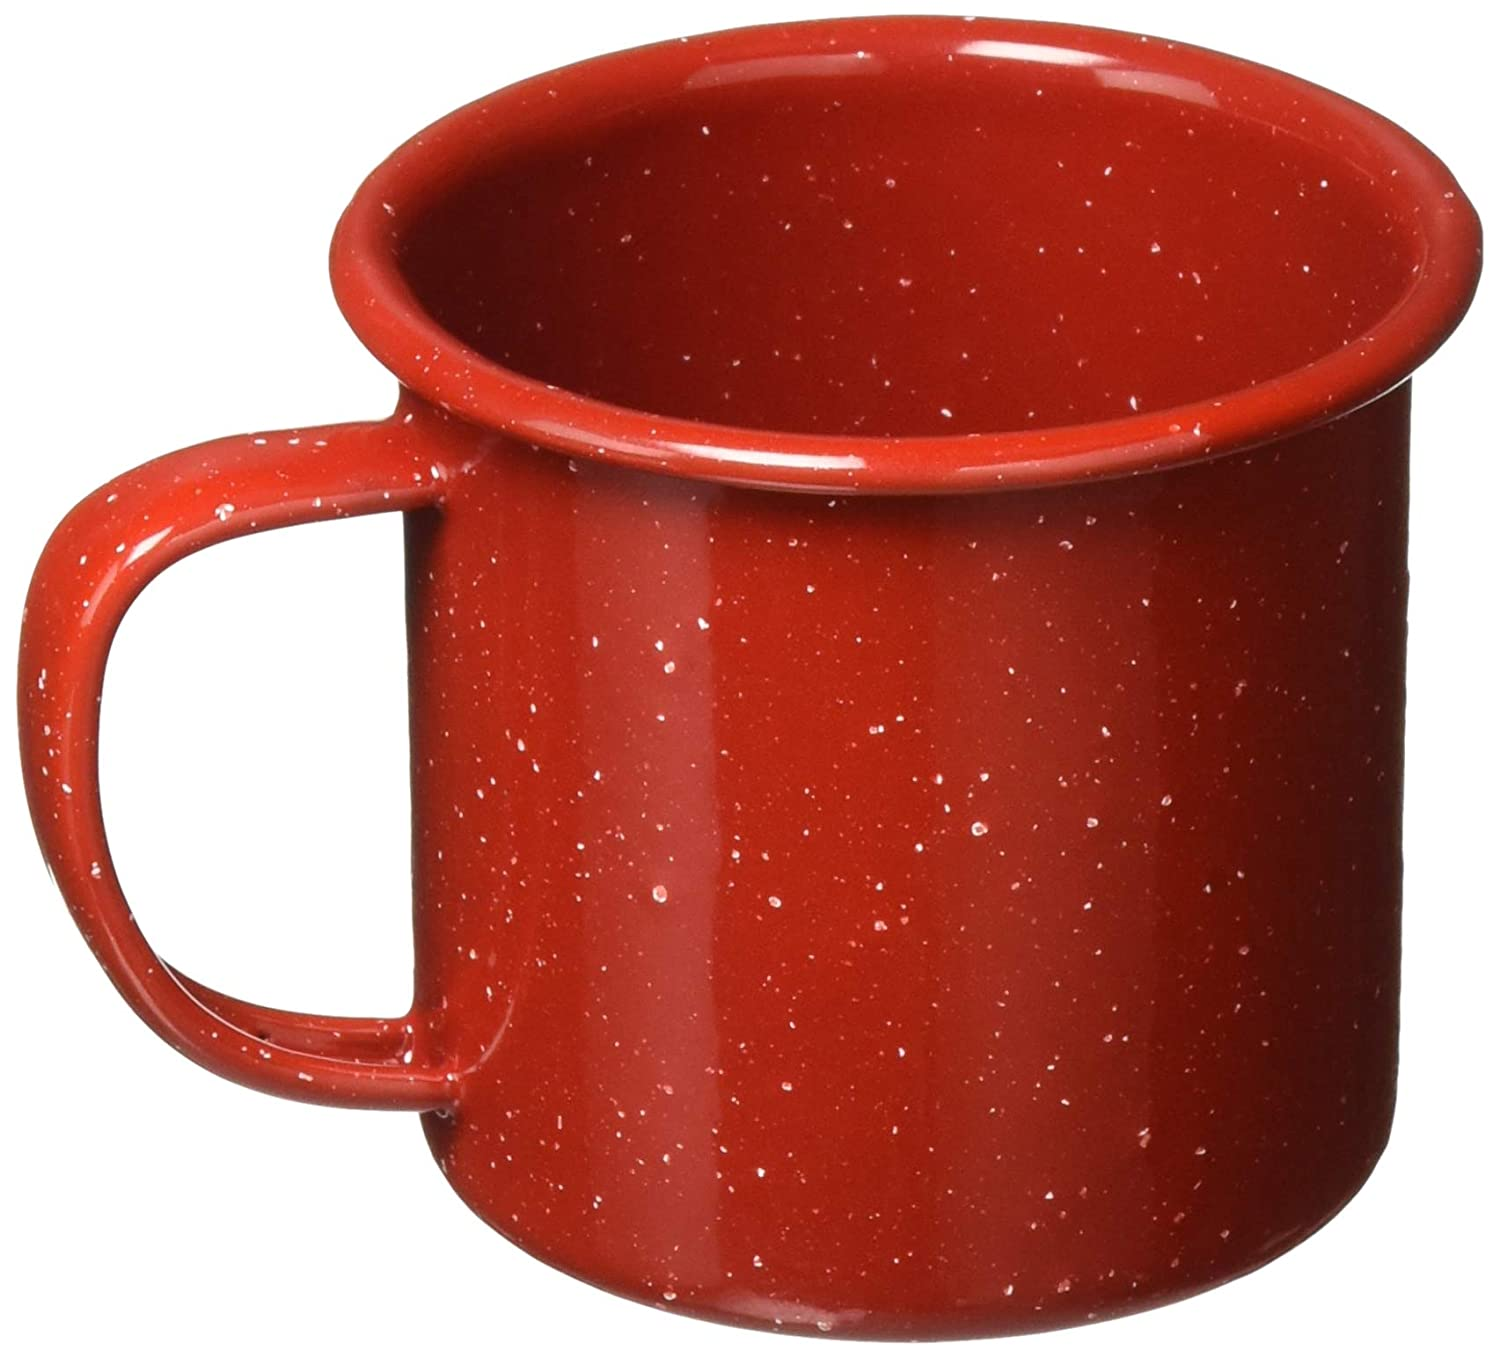 79f124b1e19 Amazon.com : GSI Outdoors Red Graniteware Cup, 12 Ounce : Home Decor  Products : Sports & Outdoors